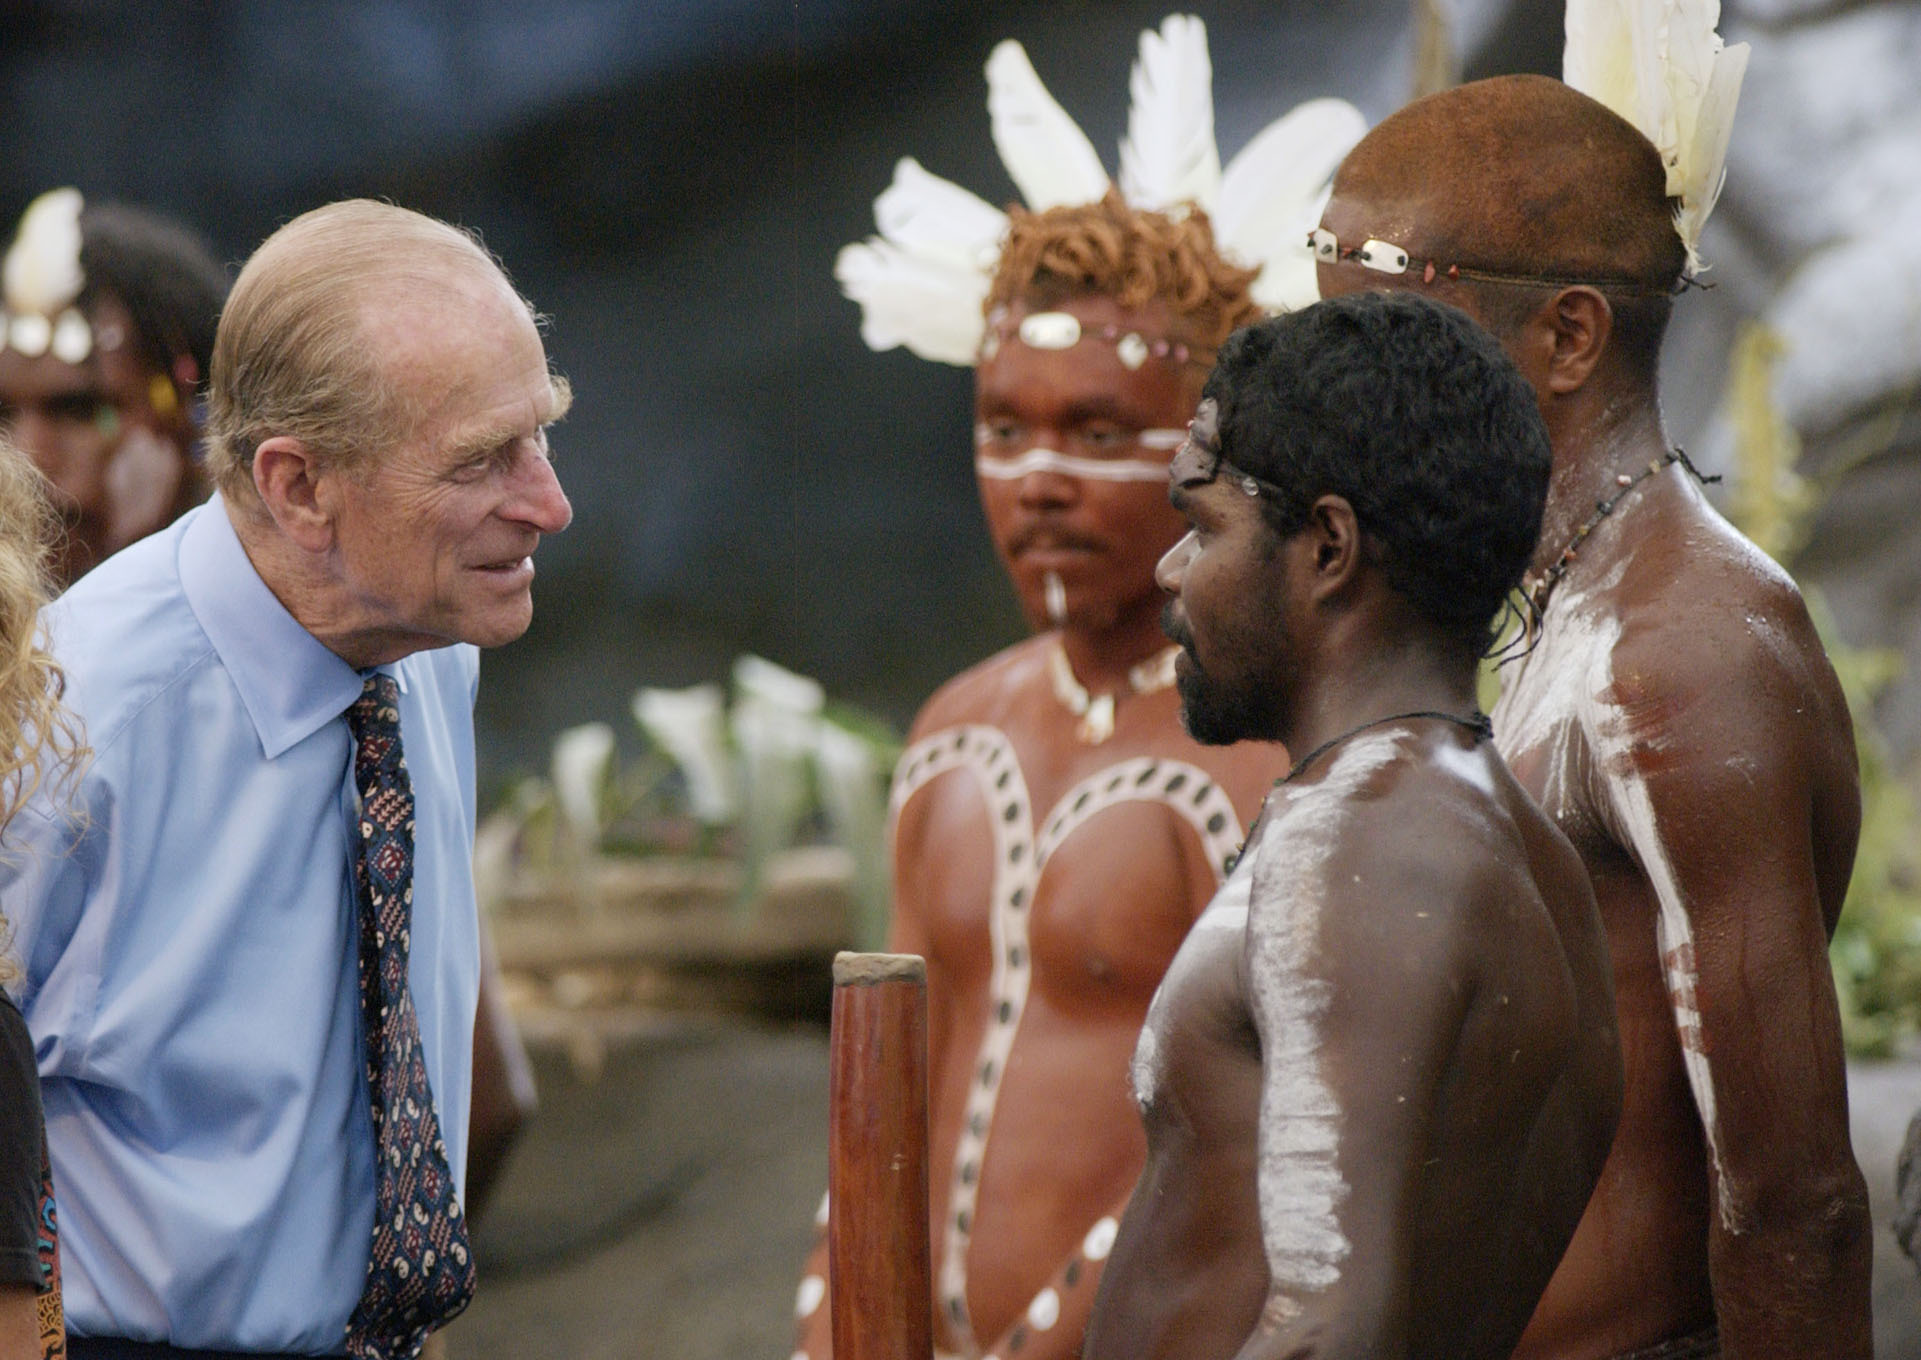 Prince Philip aborigines